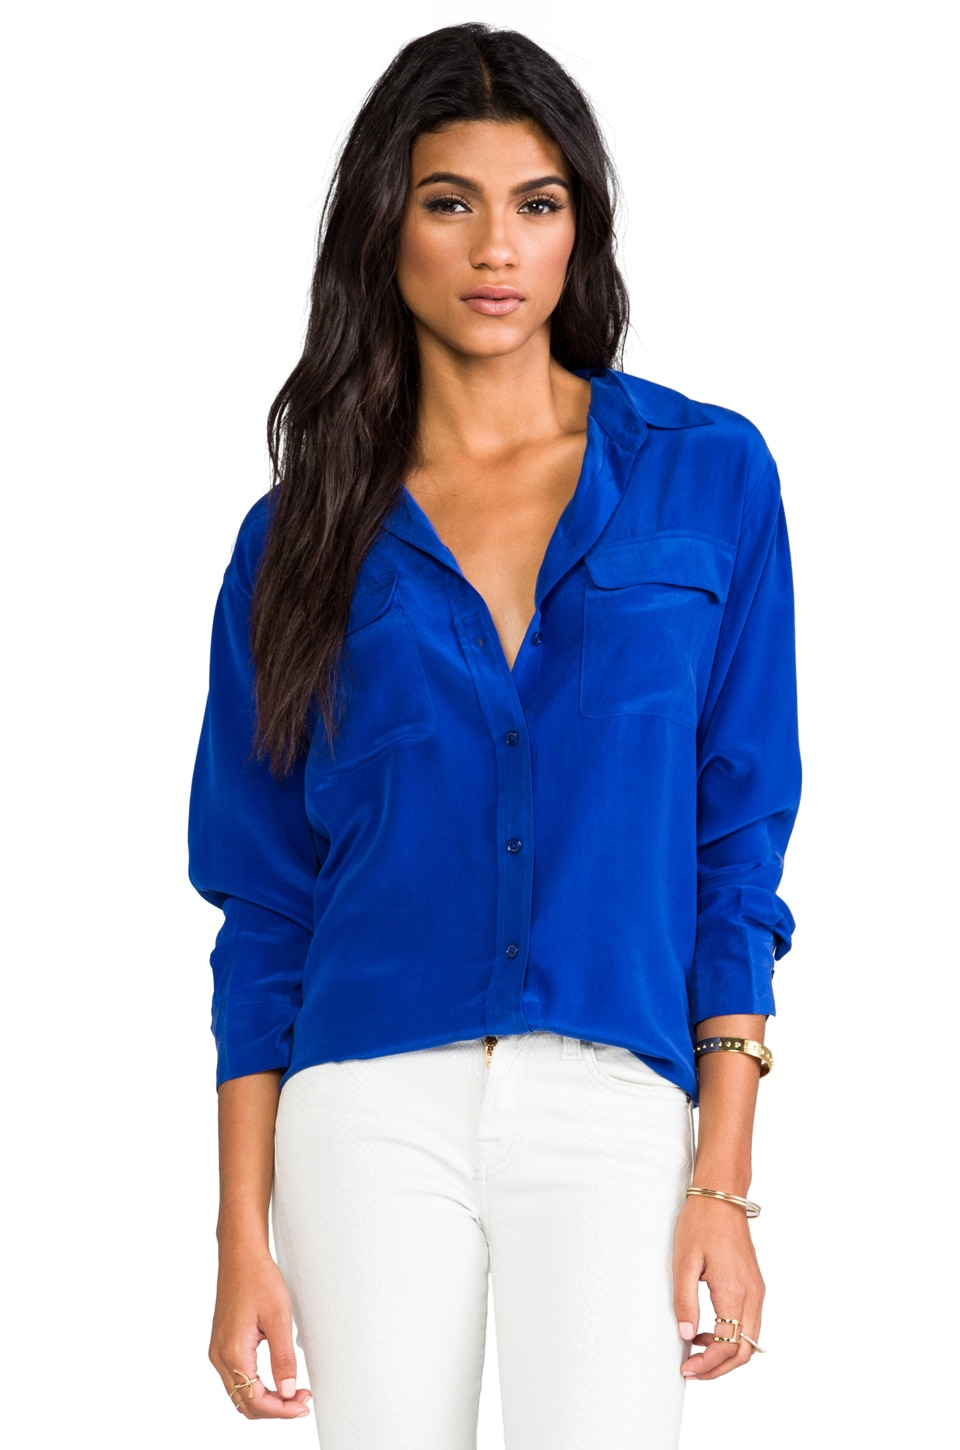 Equipment Signature Vintage Wash Blouse in Mazarine Blue